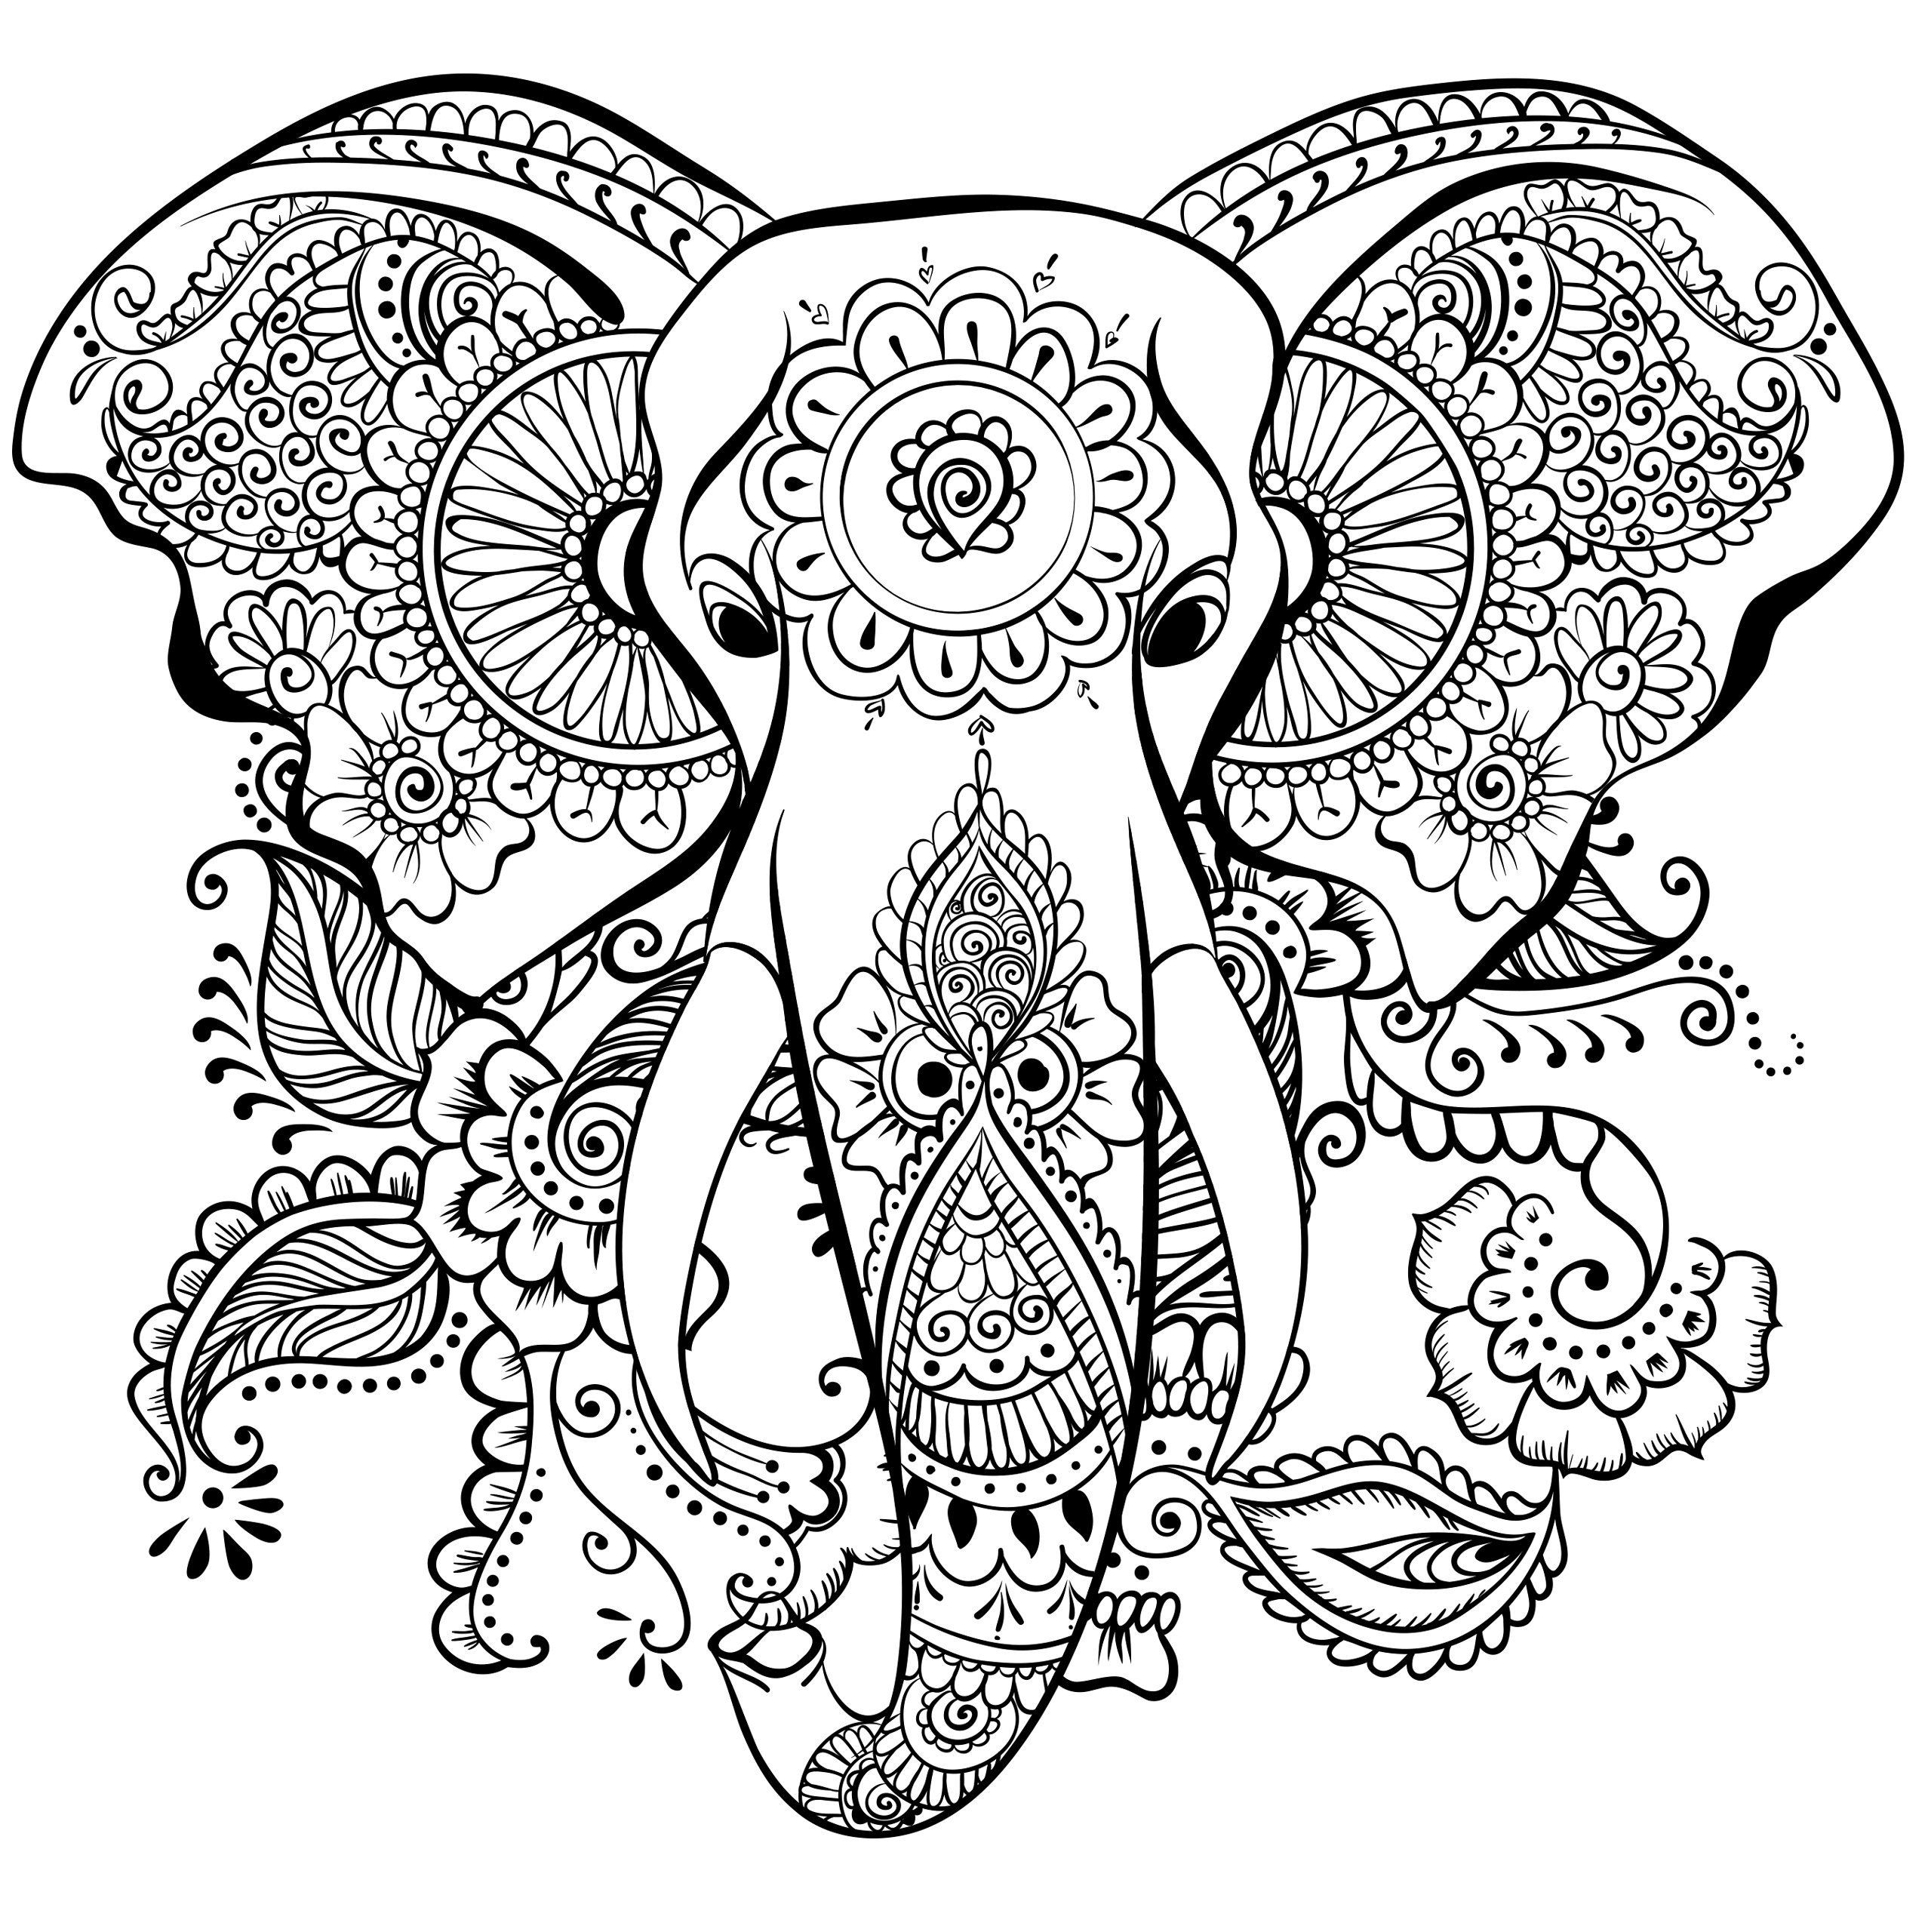 Adult Stress Coloring Books  Wild At Heart Adult Coloring Book 31 stress relieving